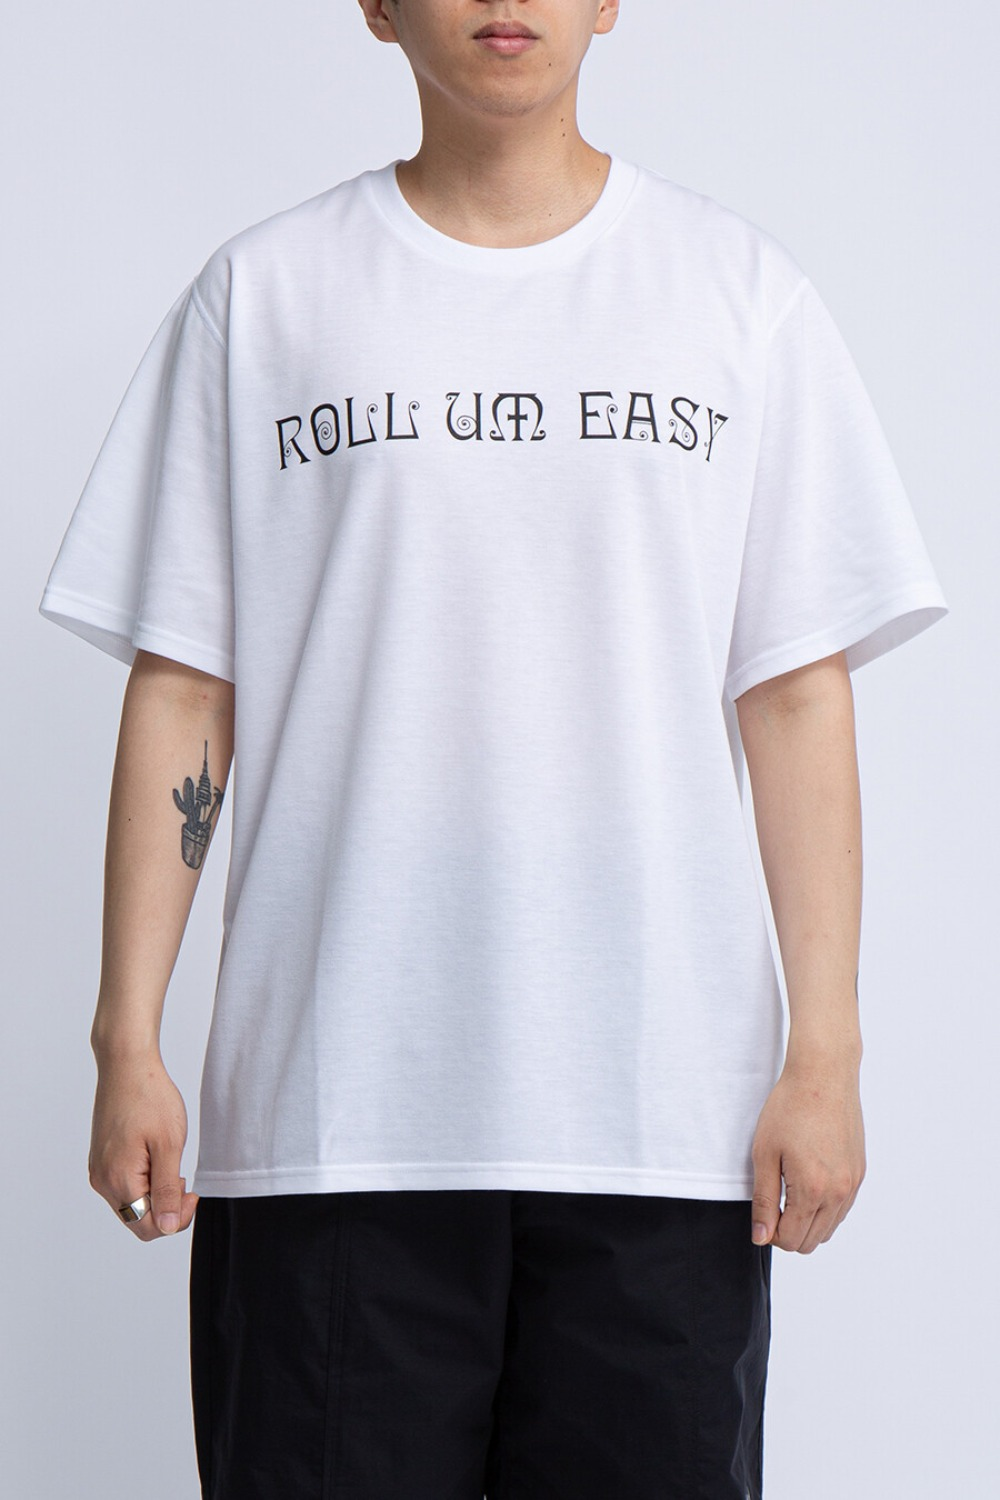 CREW NECK TEE ROLL UM EASY WHITE